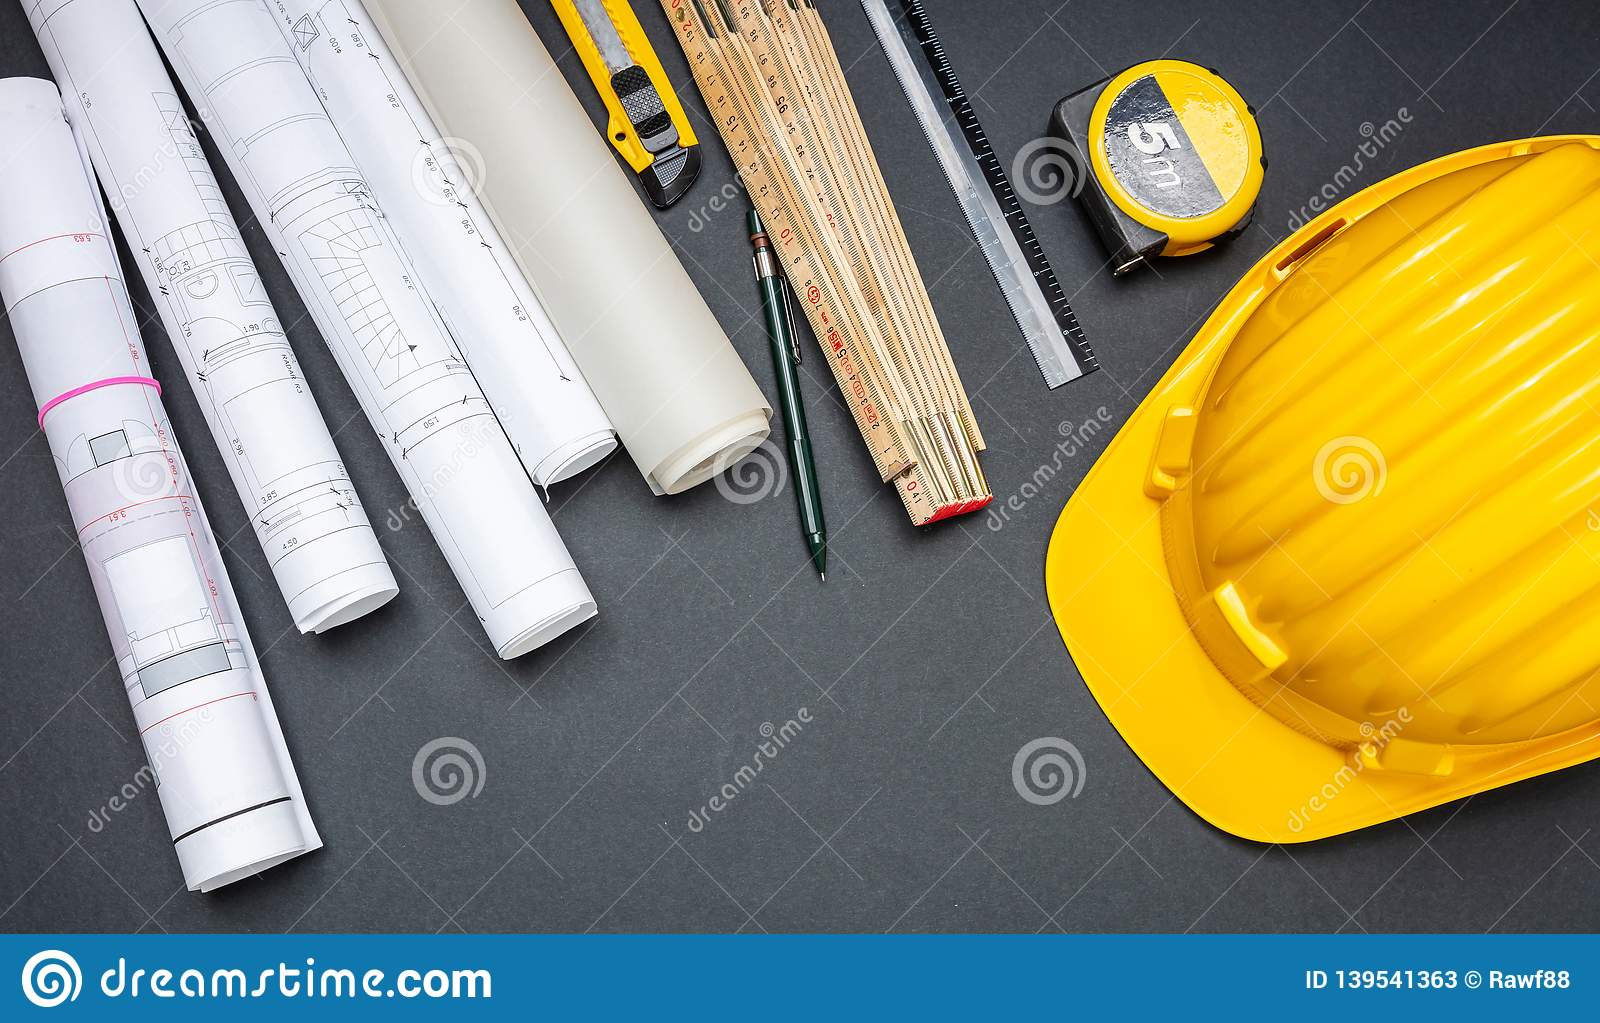 Project Blueprints, Yellow Hardhat And Engineering Tools On